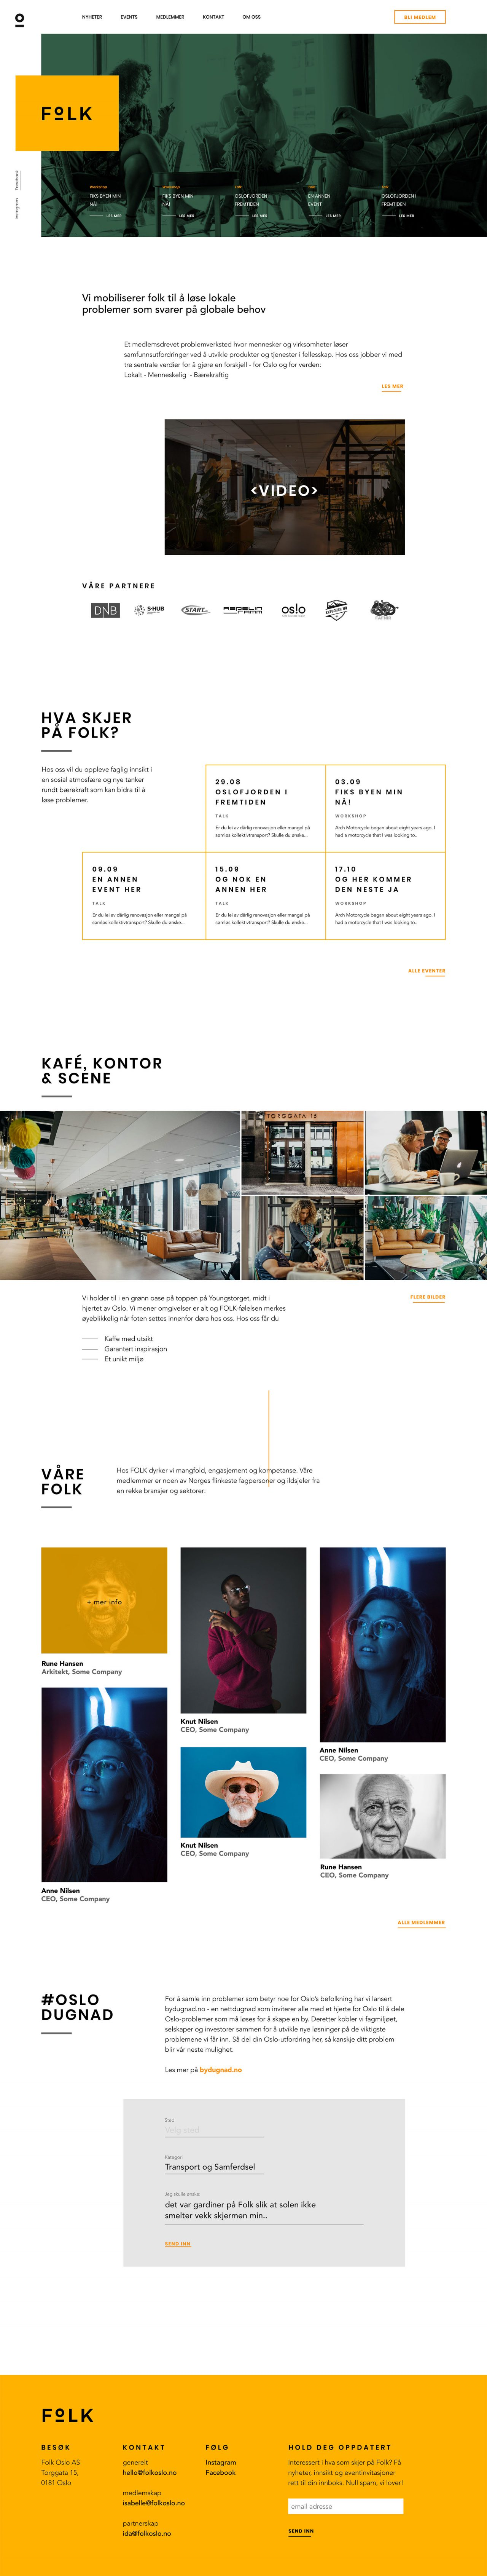 website page design for Folk Oslo, design and development by Hable Studios